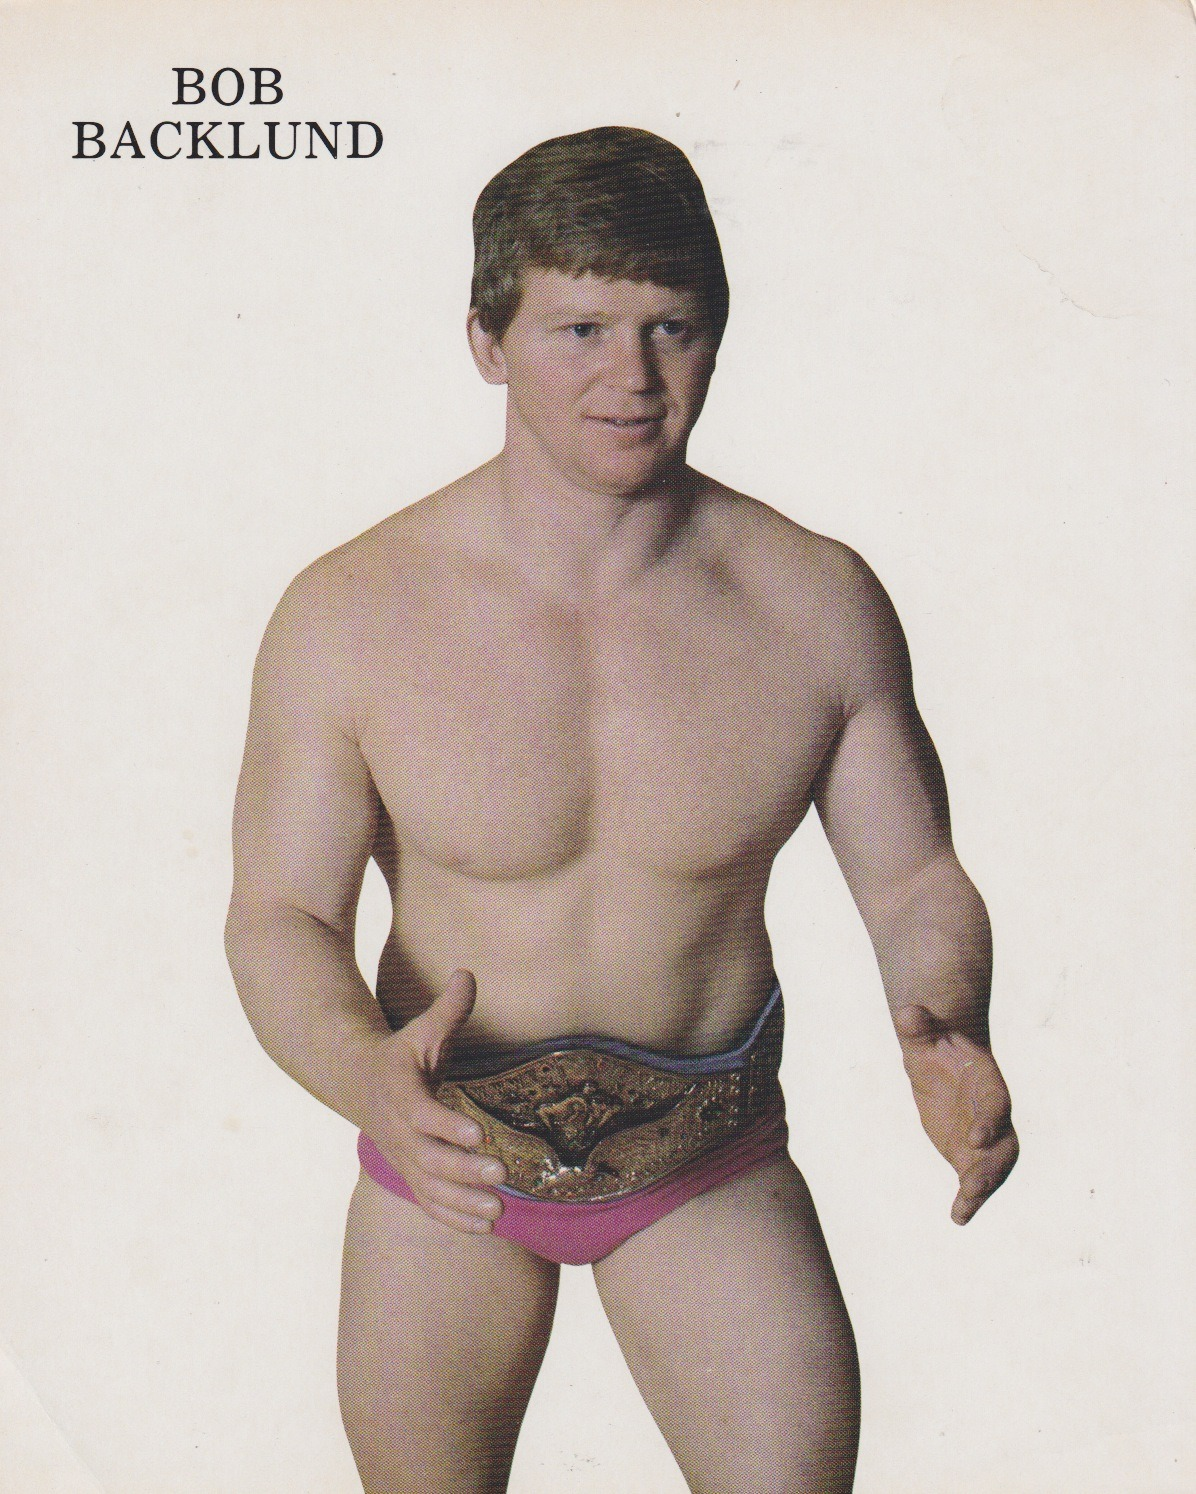 Depending on the source, opinions are that Bob Backlund was not a huge draw and this prompted the McMahons to look for ways to bring Sammartino out of retirement. The feud with Zbyszko was a calculated risk that ultimately paid off.